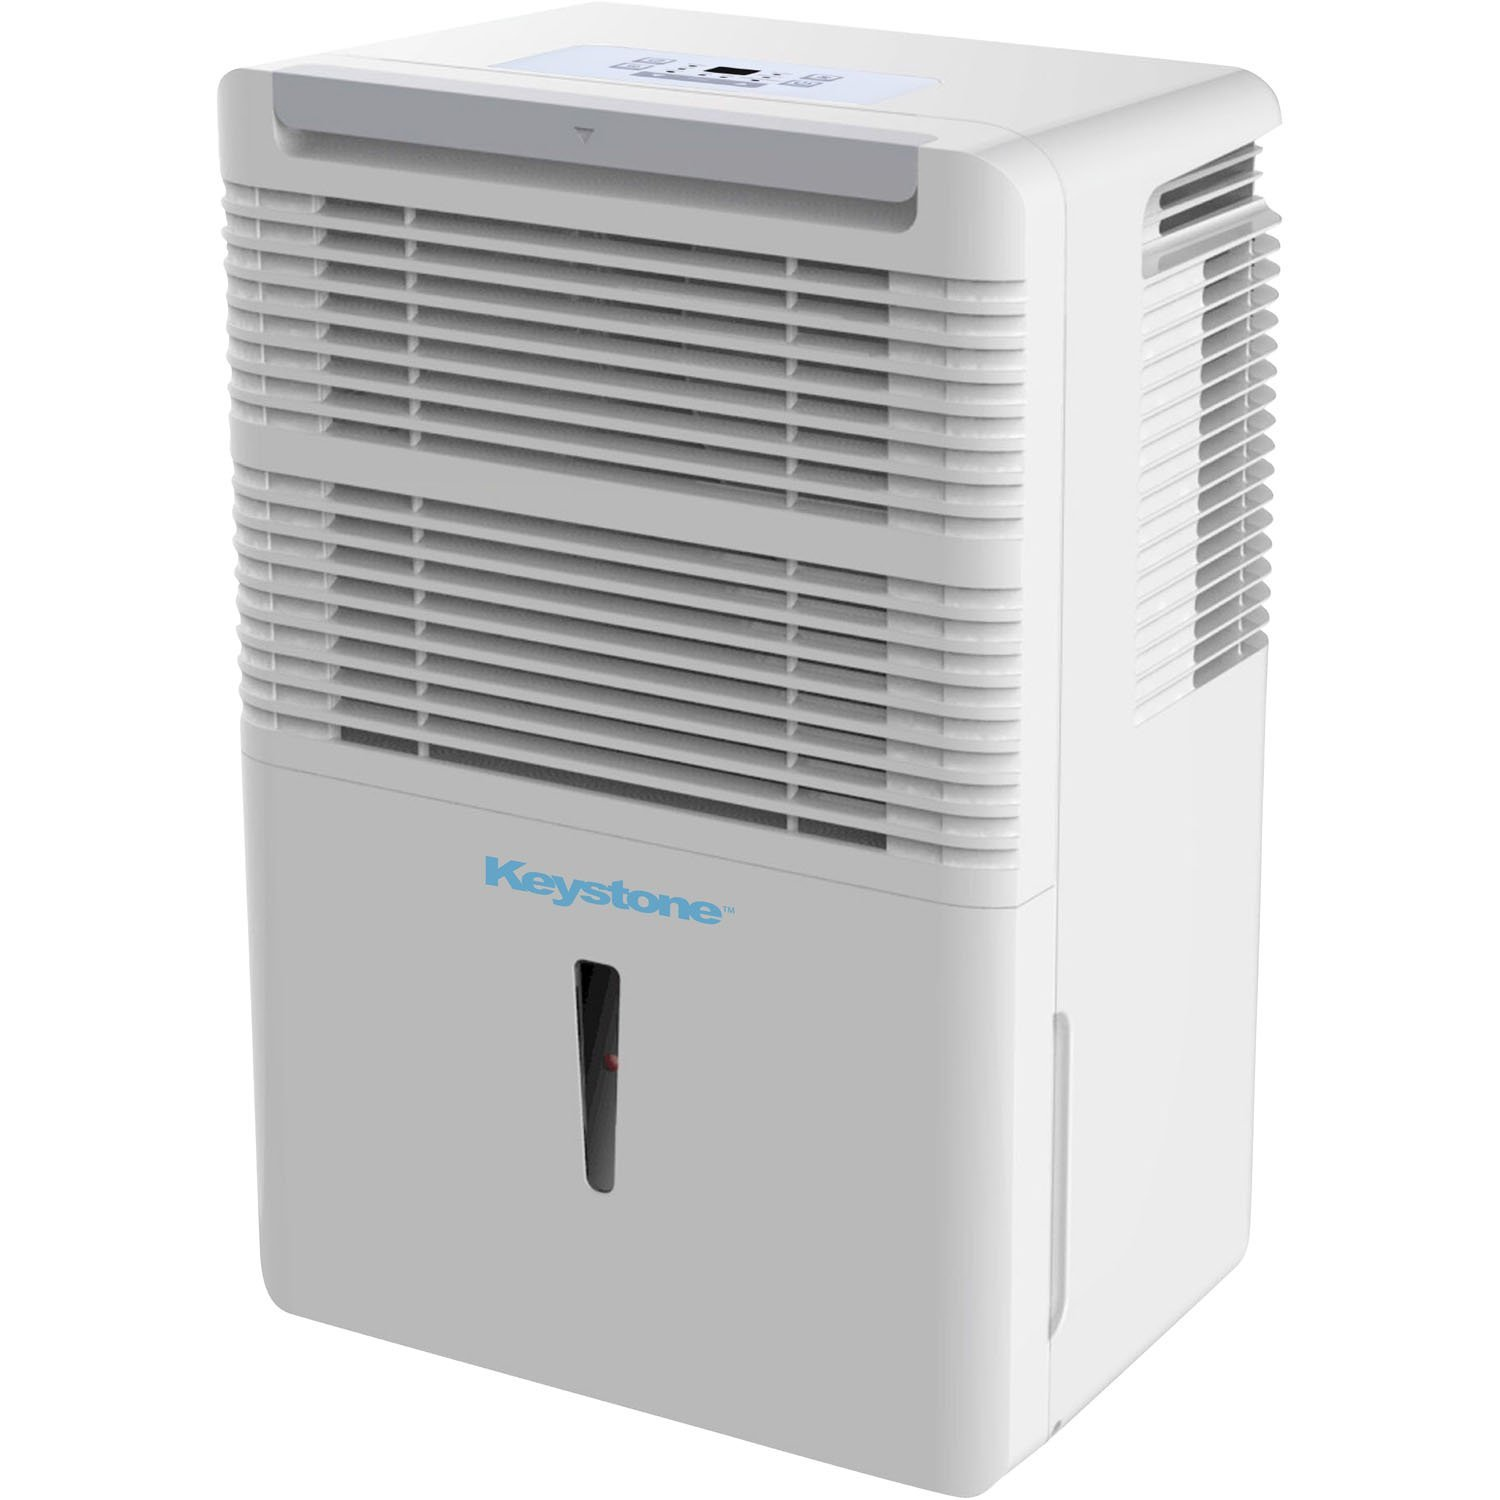 Best Crawl Space Dehumidifier 2018 Stop Mold Growth